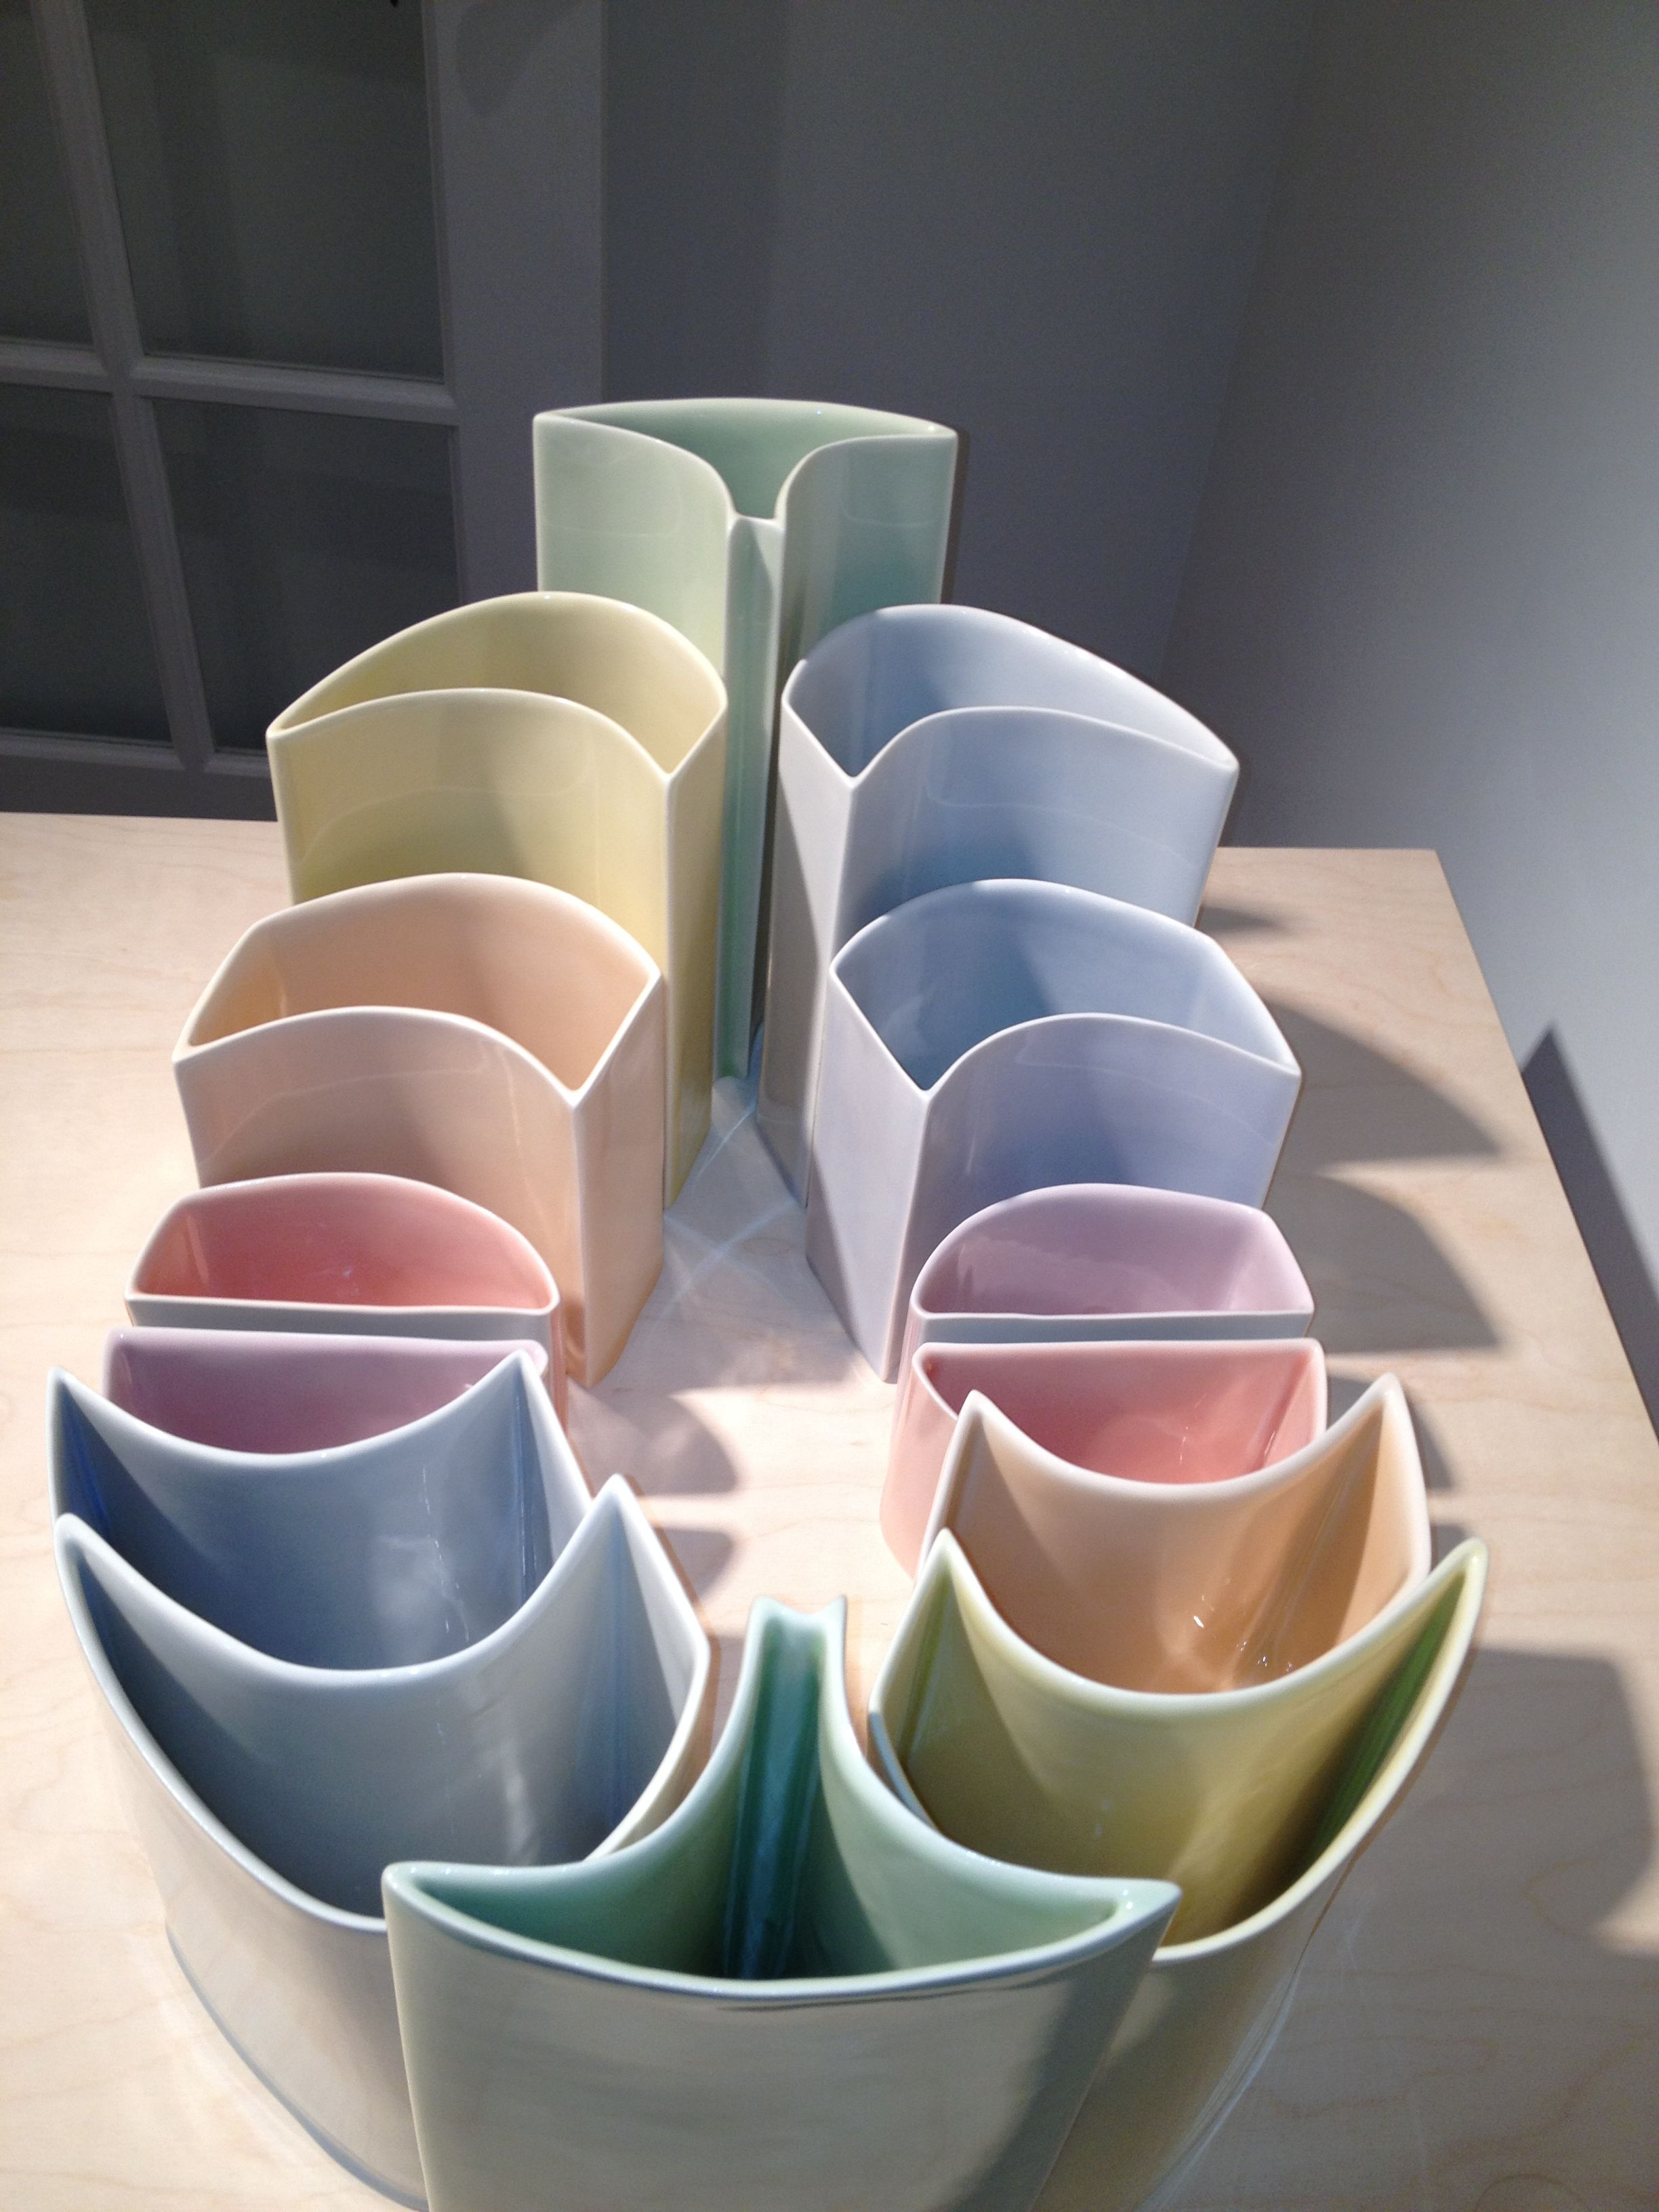 Alfred University Senior Thesis Shows - Porcelain bowls by Heather Mae Erickson